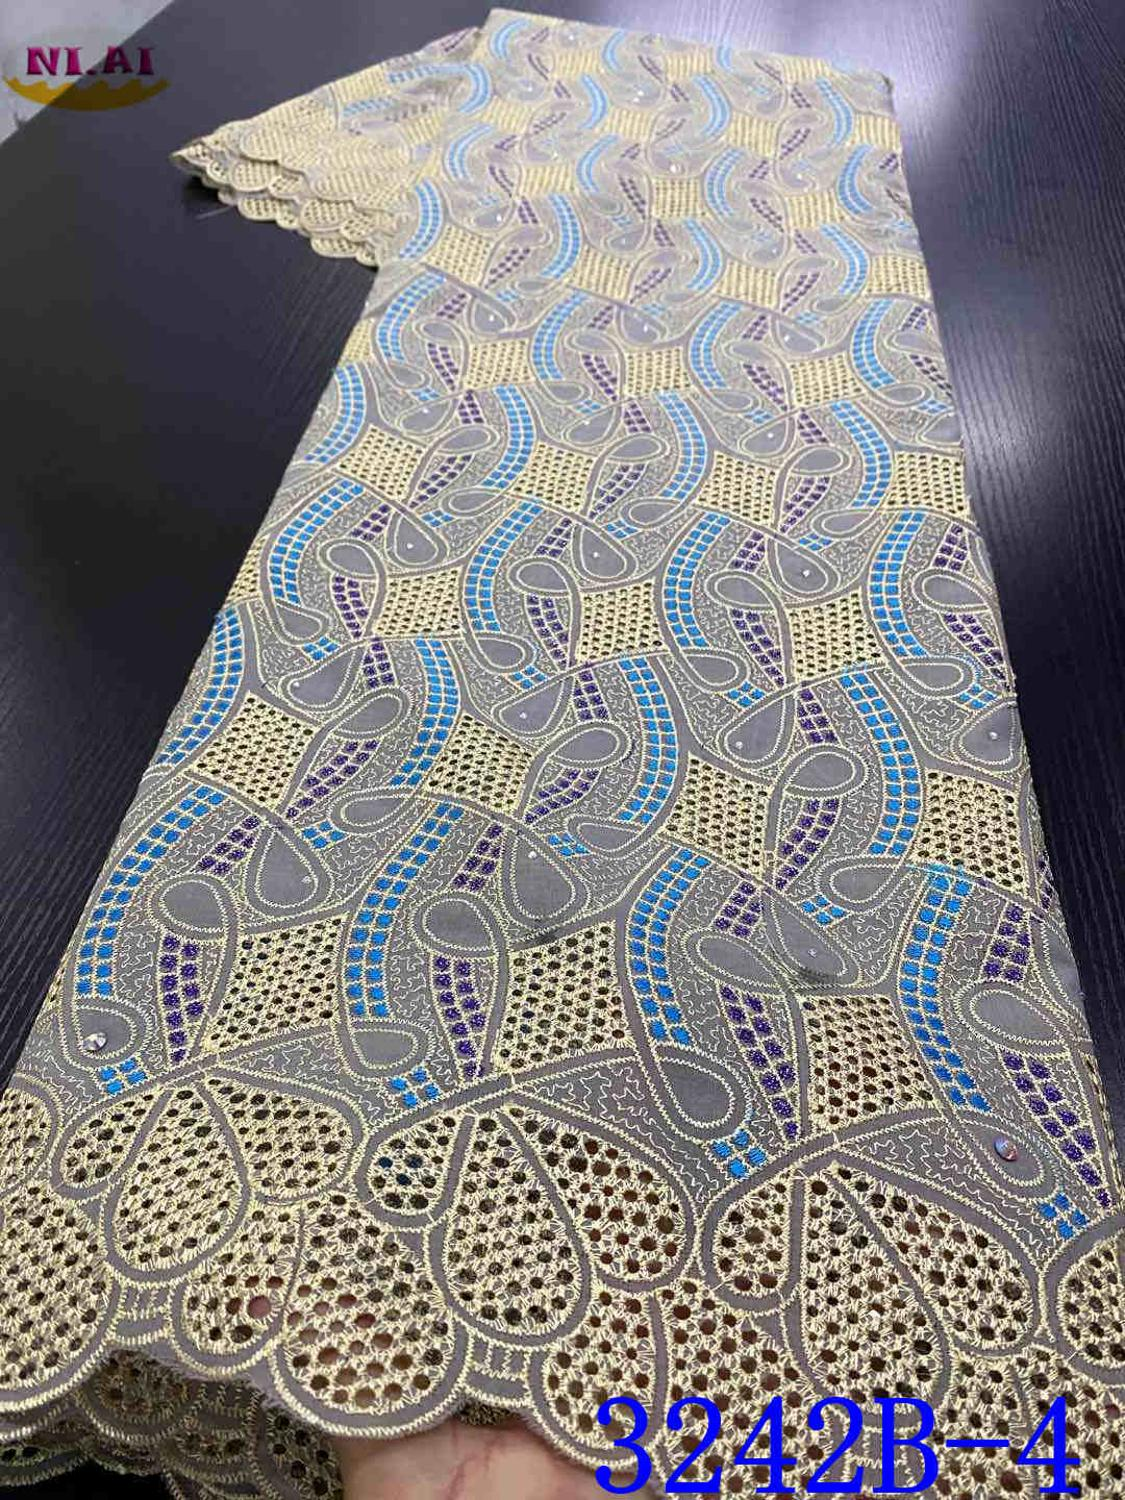 Voile Lace Fabric 2020 High Quality Nigerian African Cotton Lace Fabrics Embroidery Punch Cotton For Daily Sew YA3242B-4